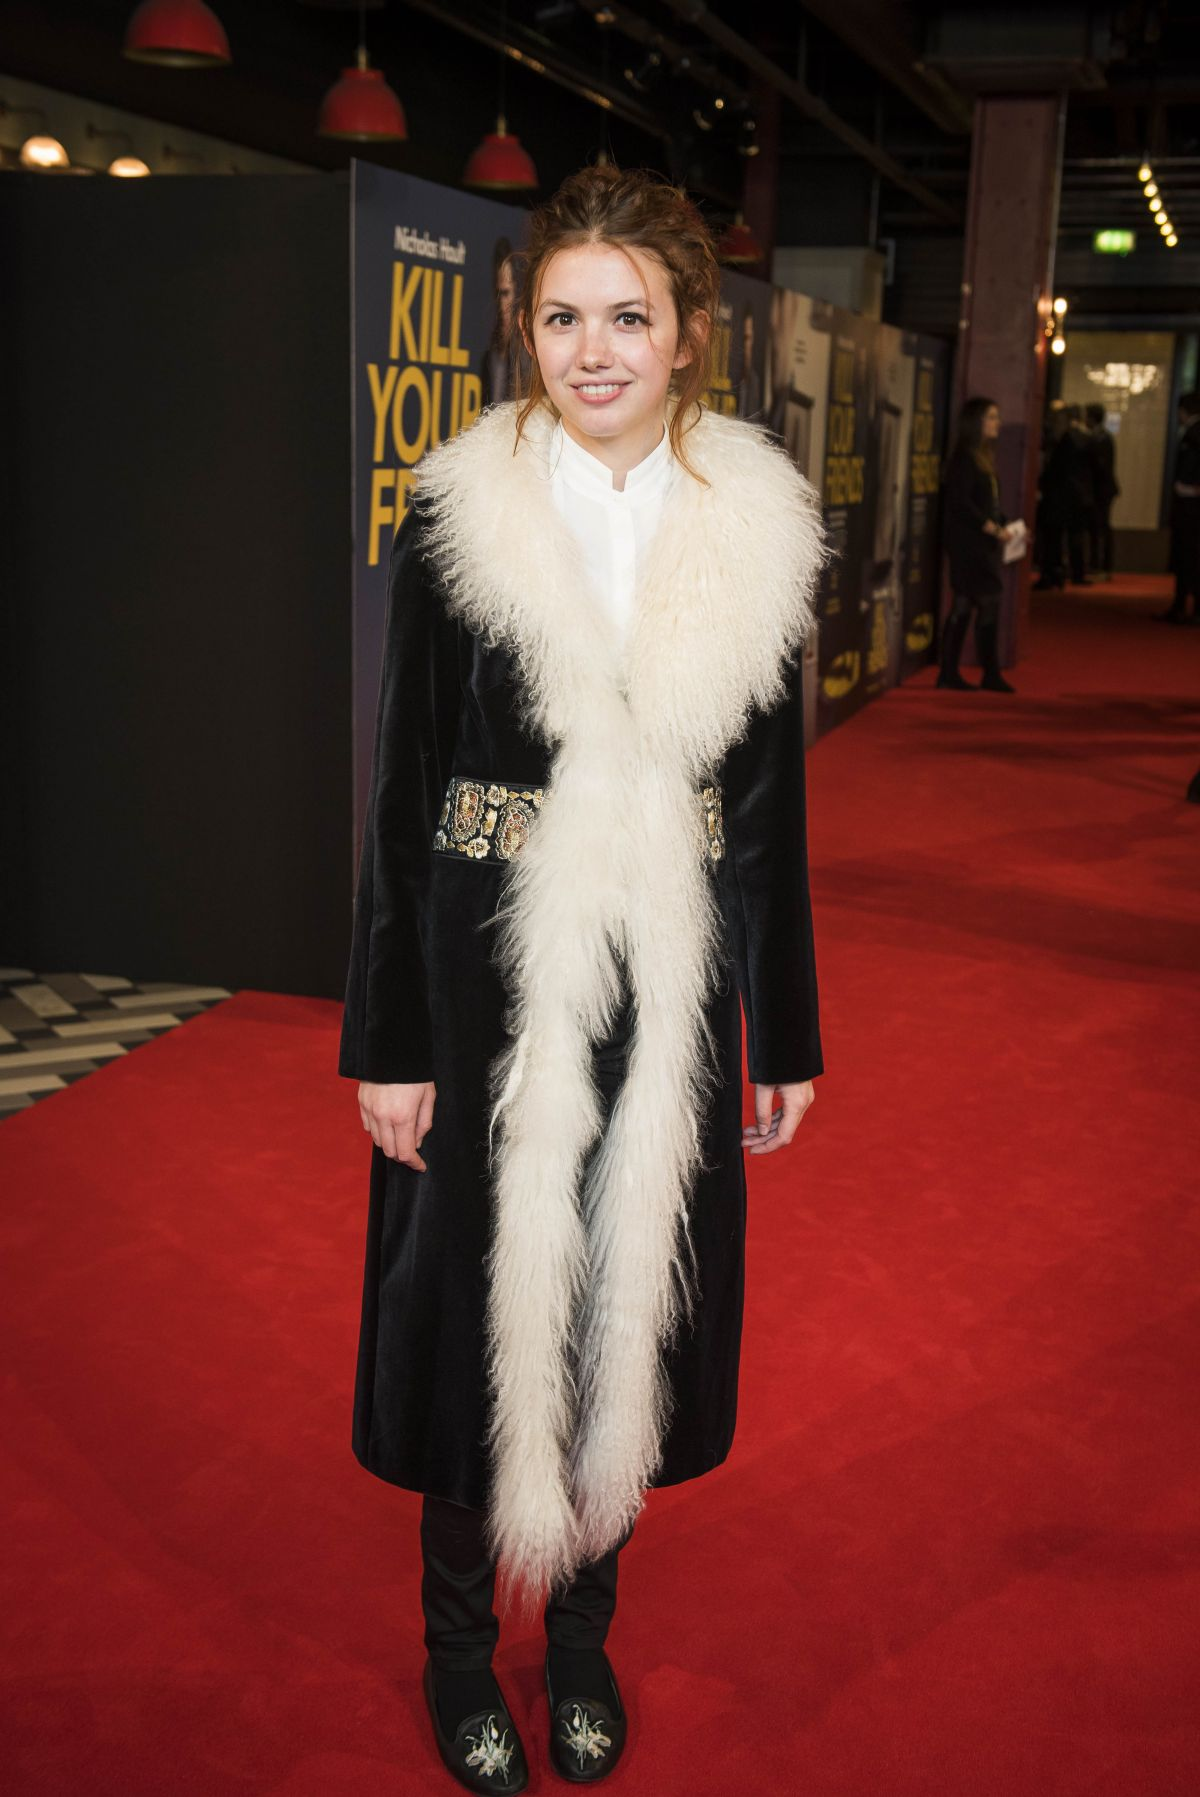 HANNAH MURRAY at Kill Your Friends Premiere in London 10/22/2015